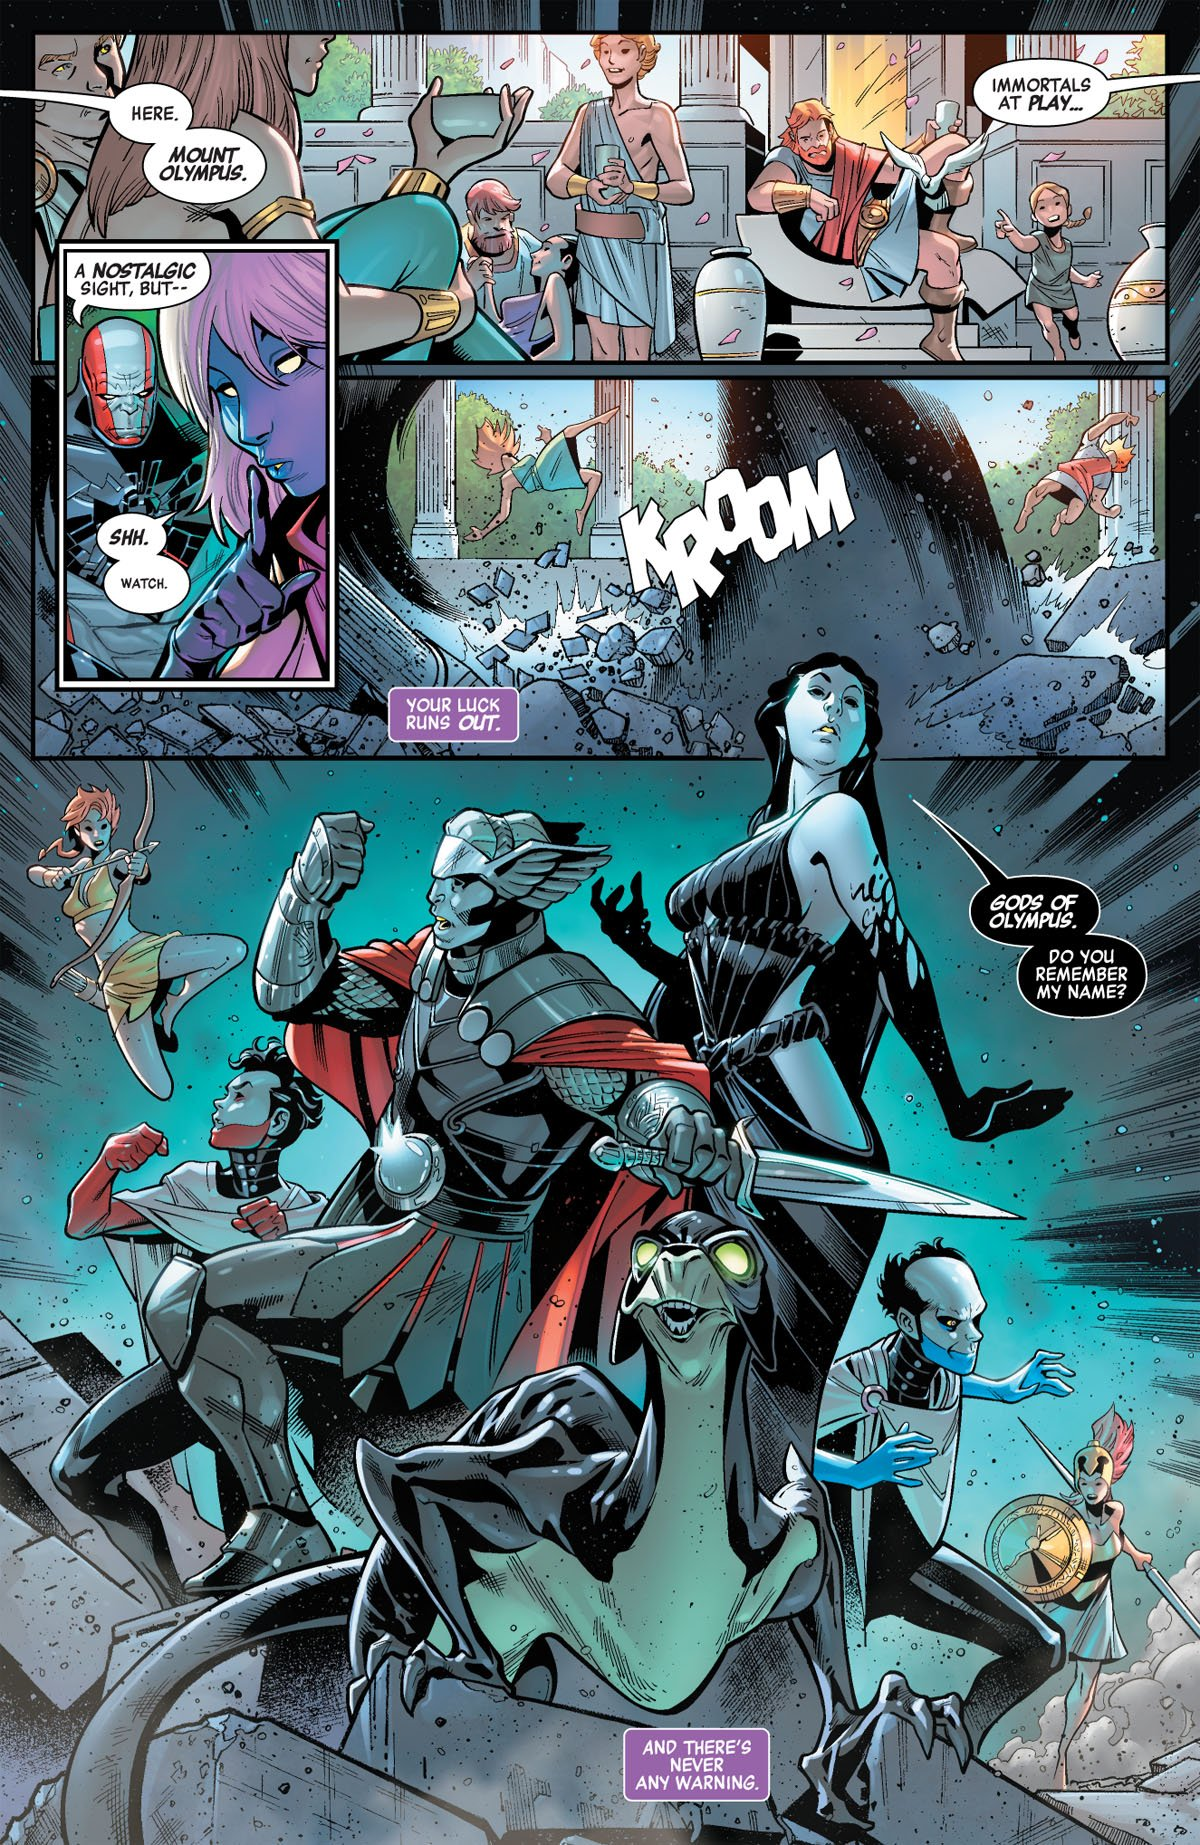 Avengers: No Road Home #2 page 2